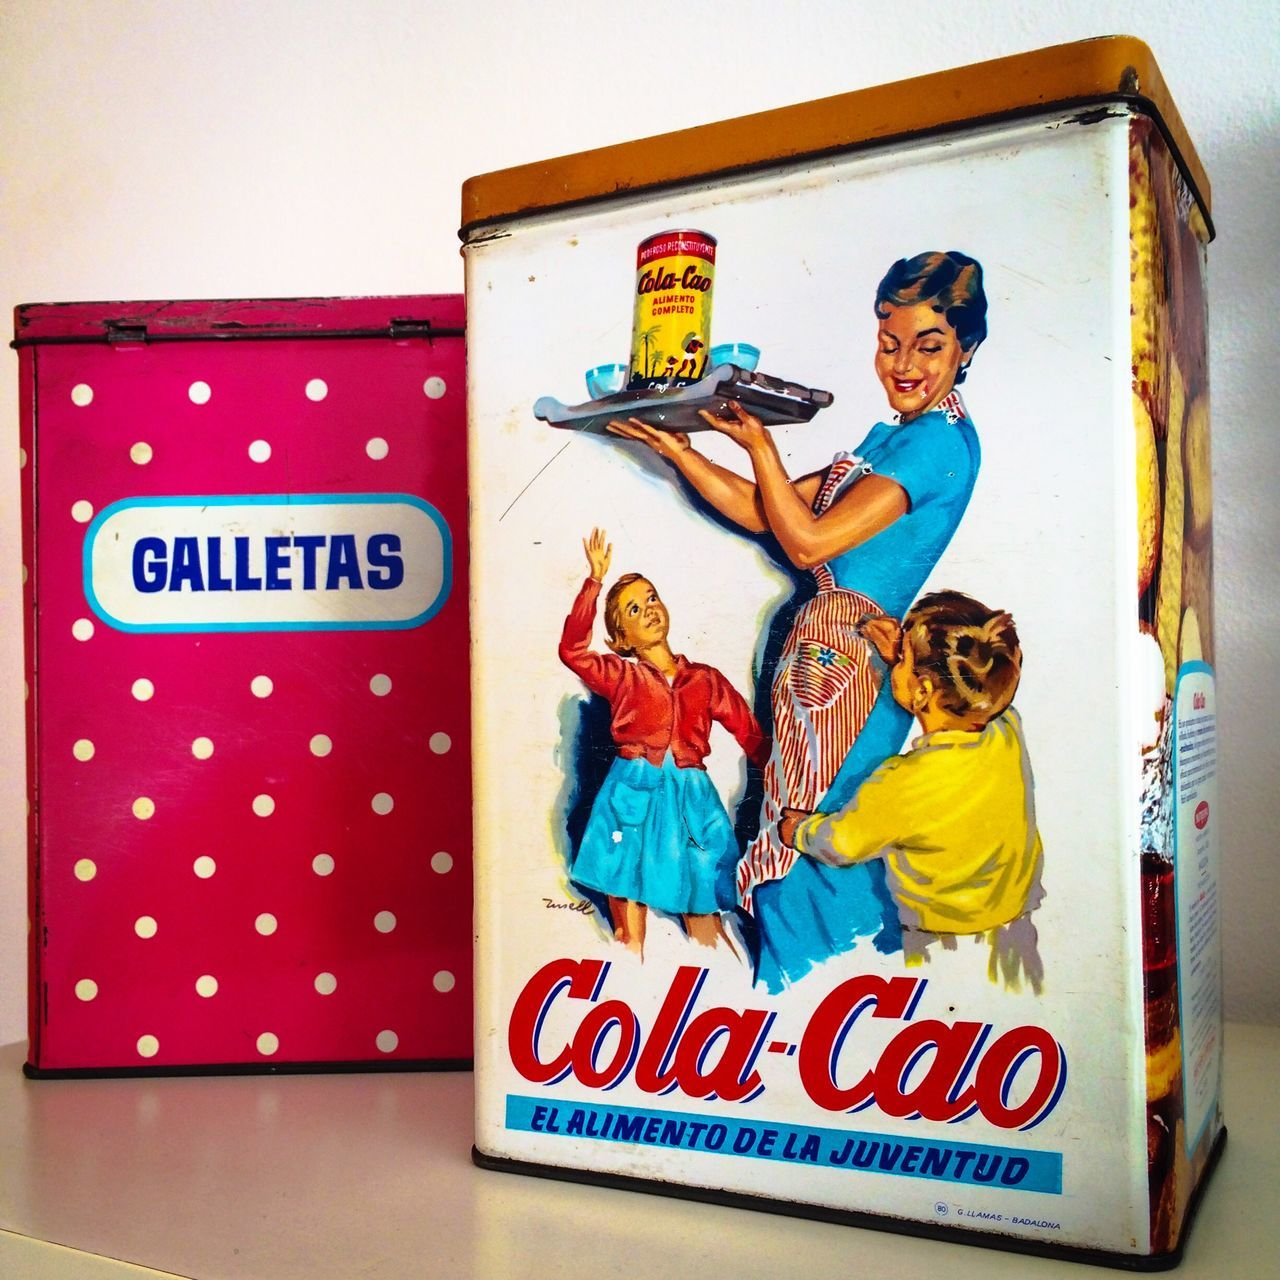 Lieblingsteil Metal Box Colacao Colo Tin Galletas Old Box Cookie Tin Cookies Childhood Cola-cao Little Treasures My Little Treasures Cacao Powder Art Is Everywhere